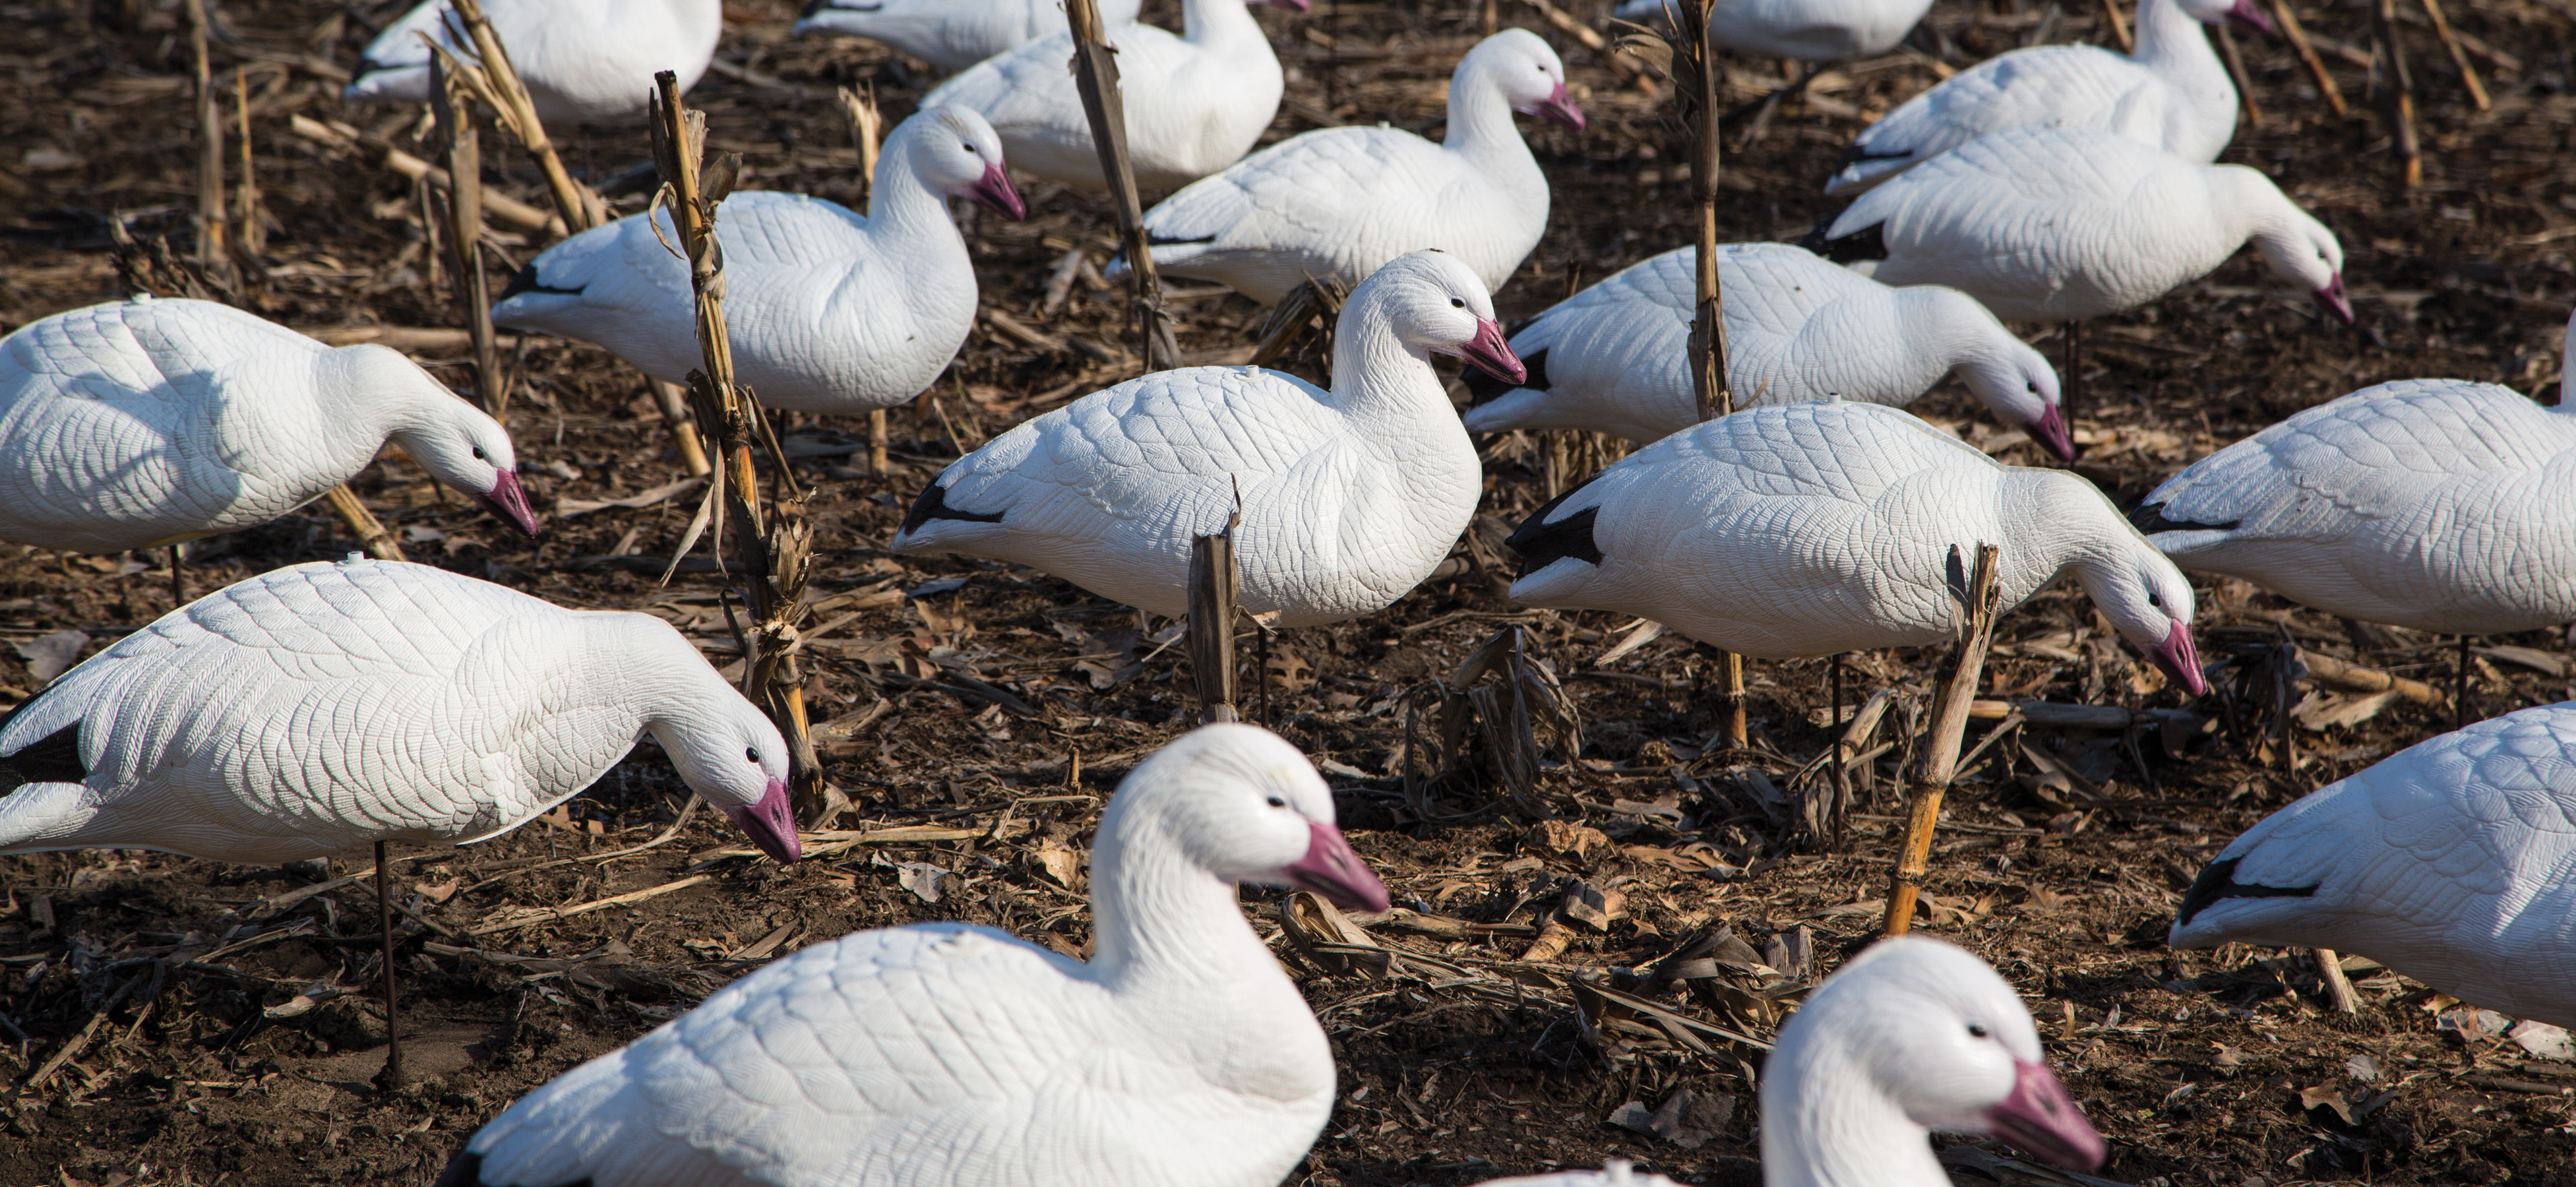 New final approach express foam snow goose decoys offer incredible realism in a collapsible for Wisconsin exterior goose season